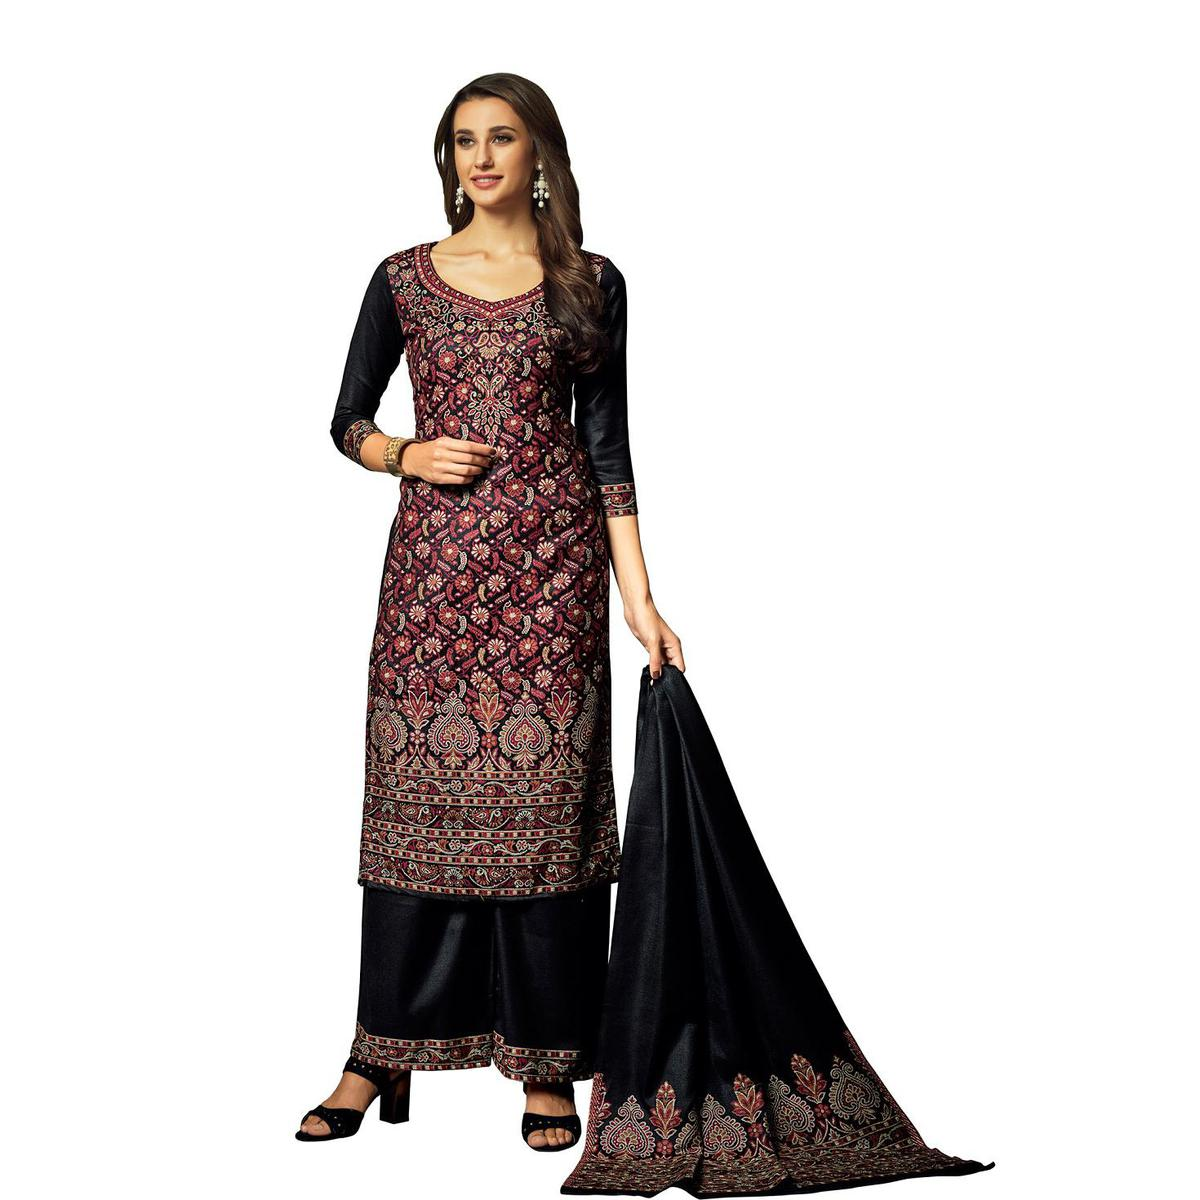 Safaa - Black Colored Party Wear Printed Rayon Acro Wool Dress Material